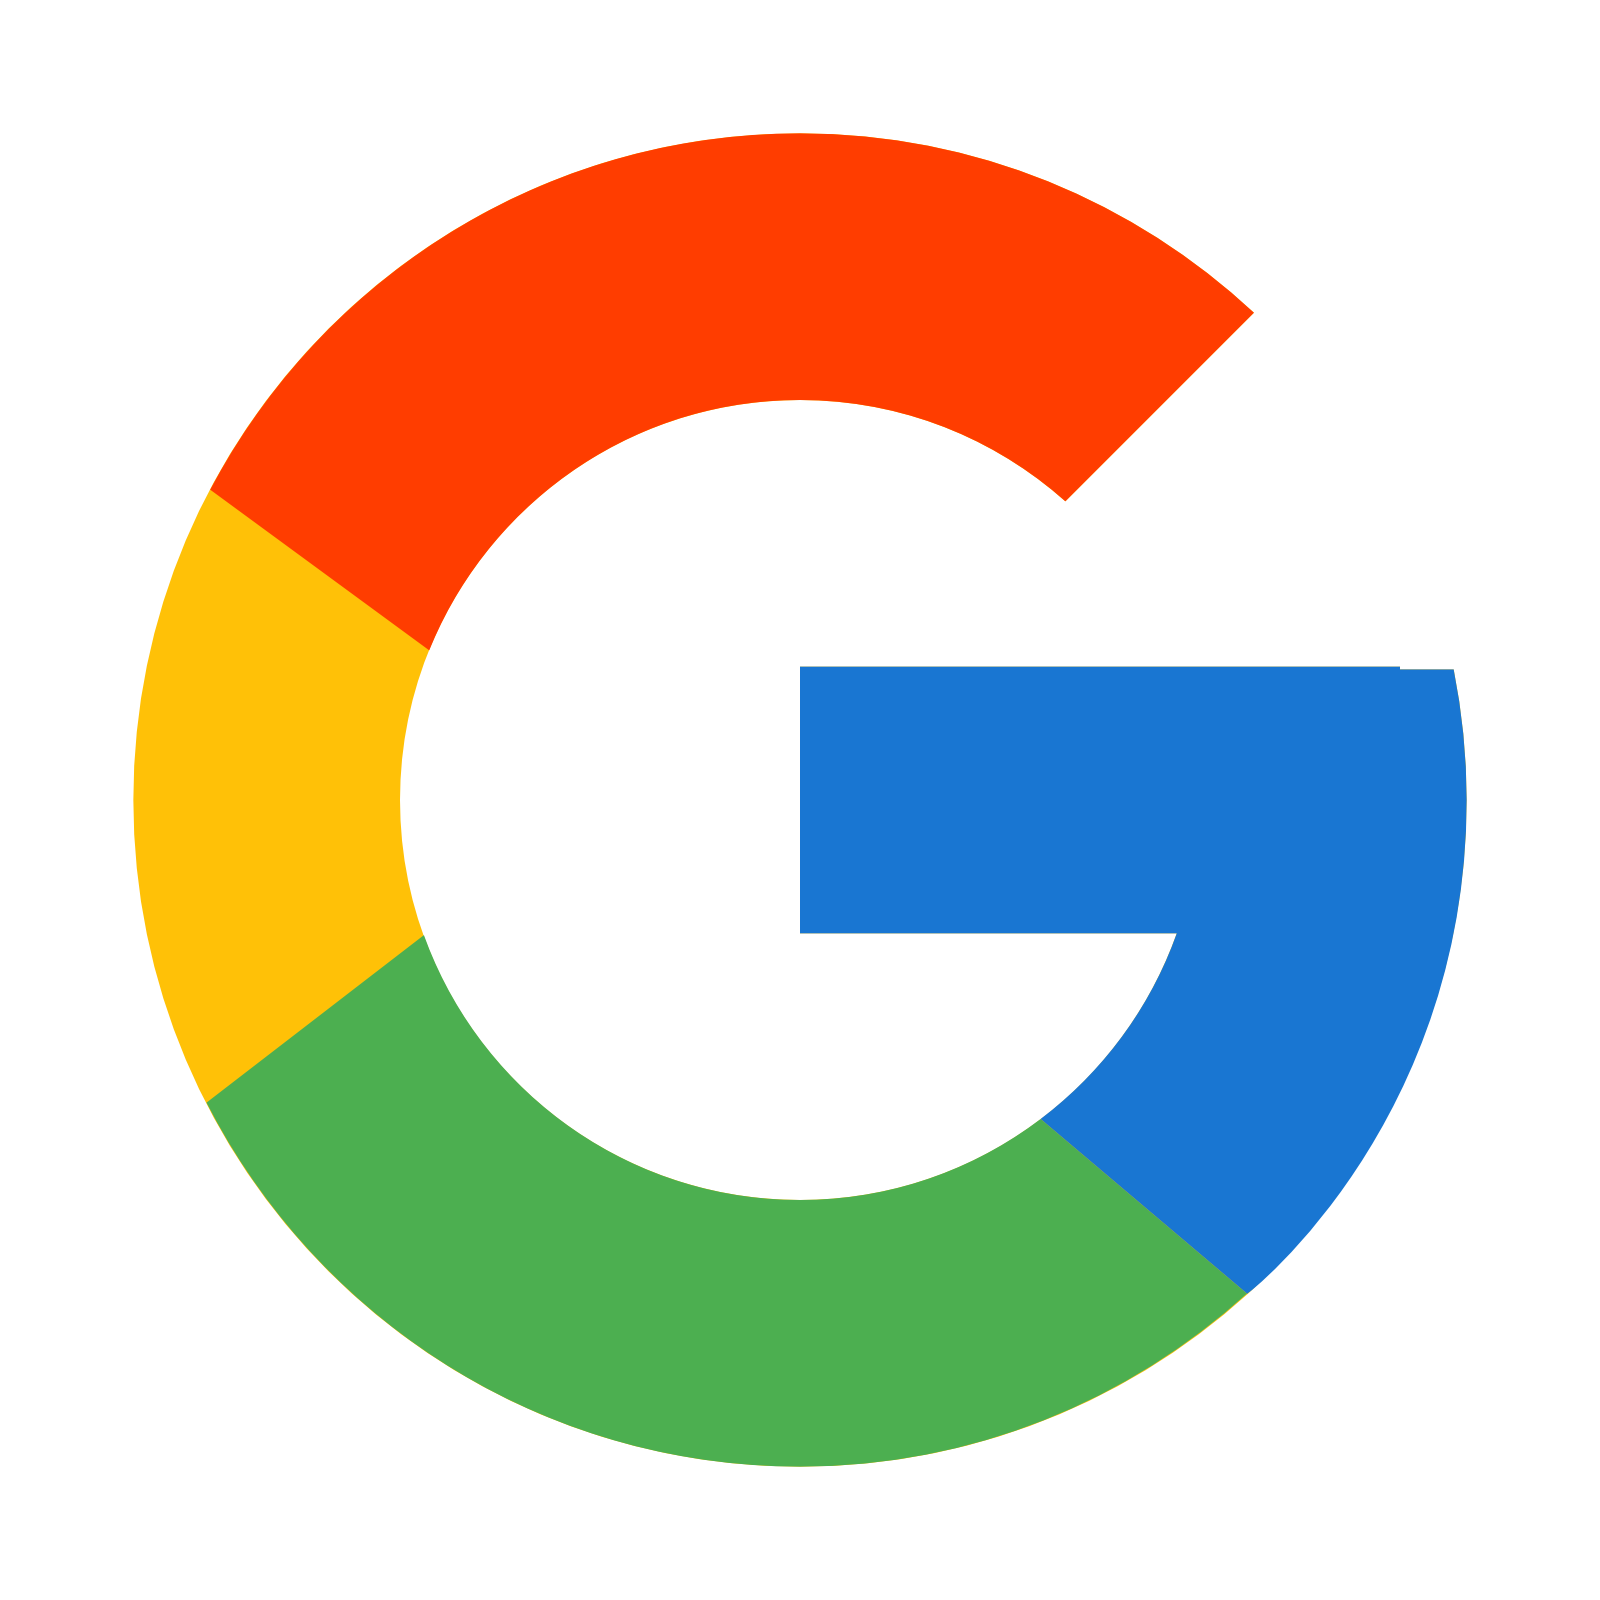 Hq november john gregory. Google photos icon png